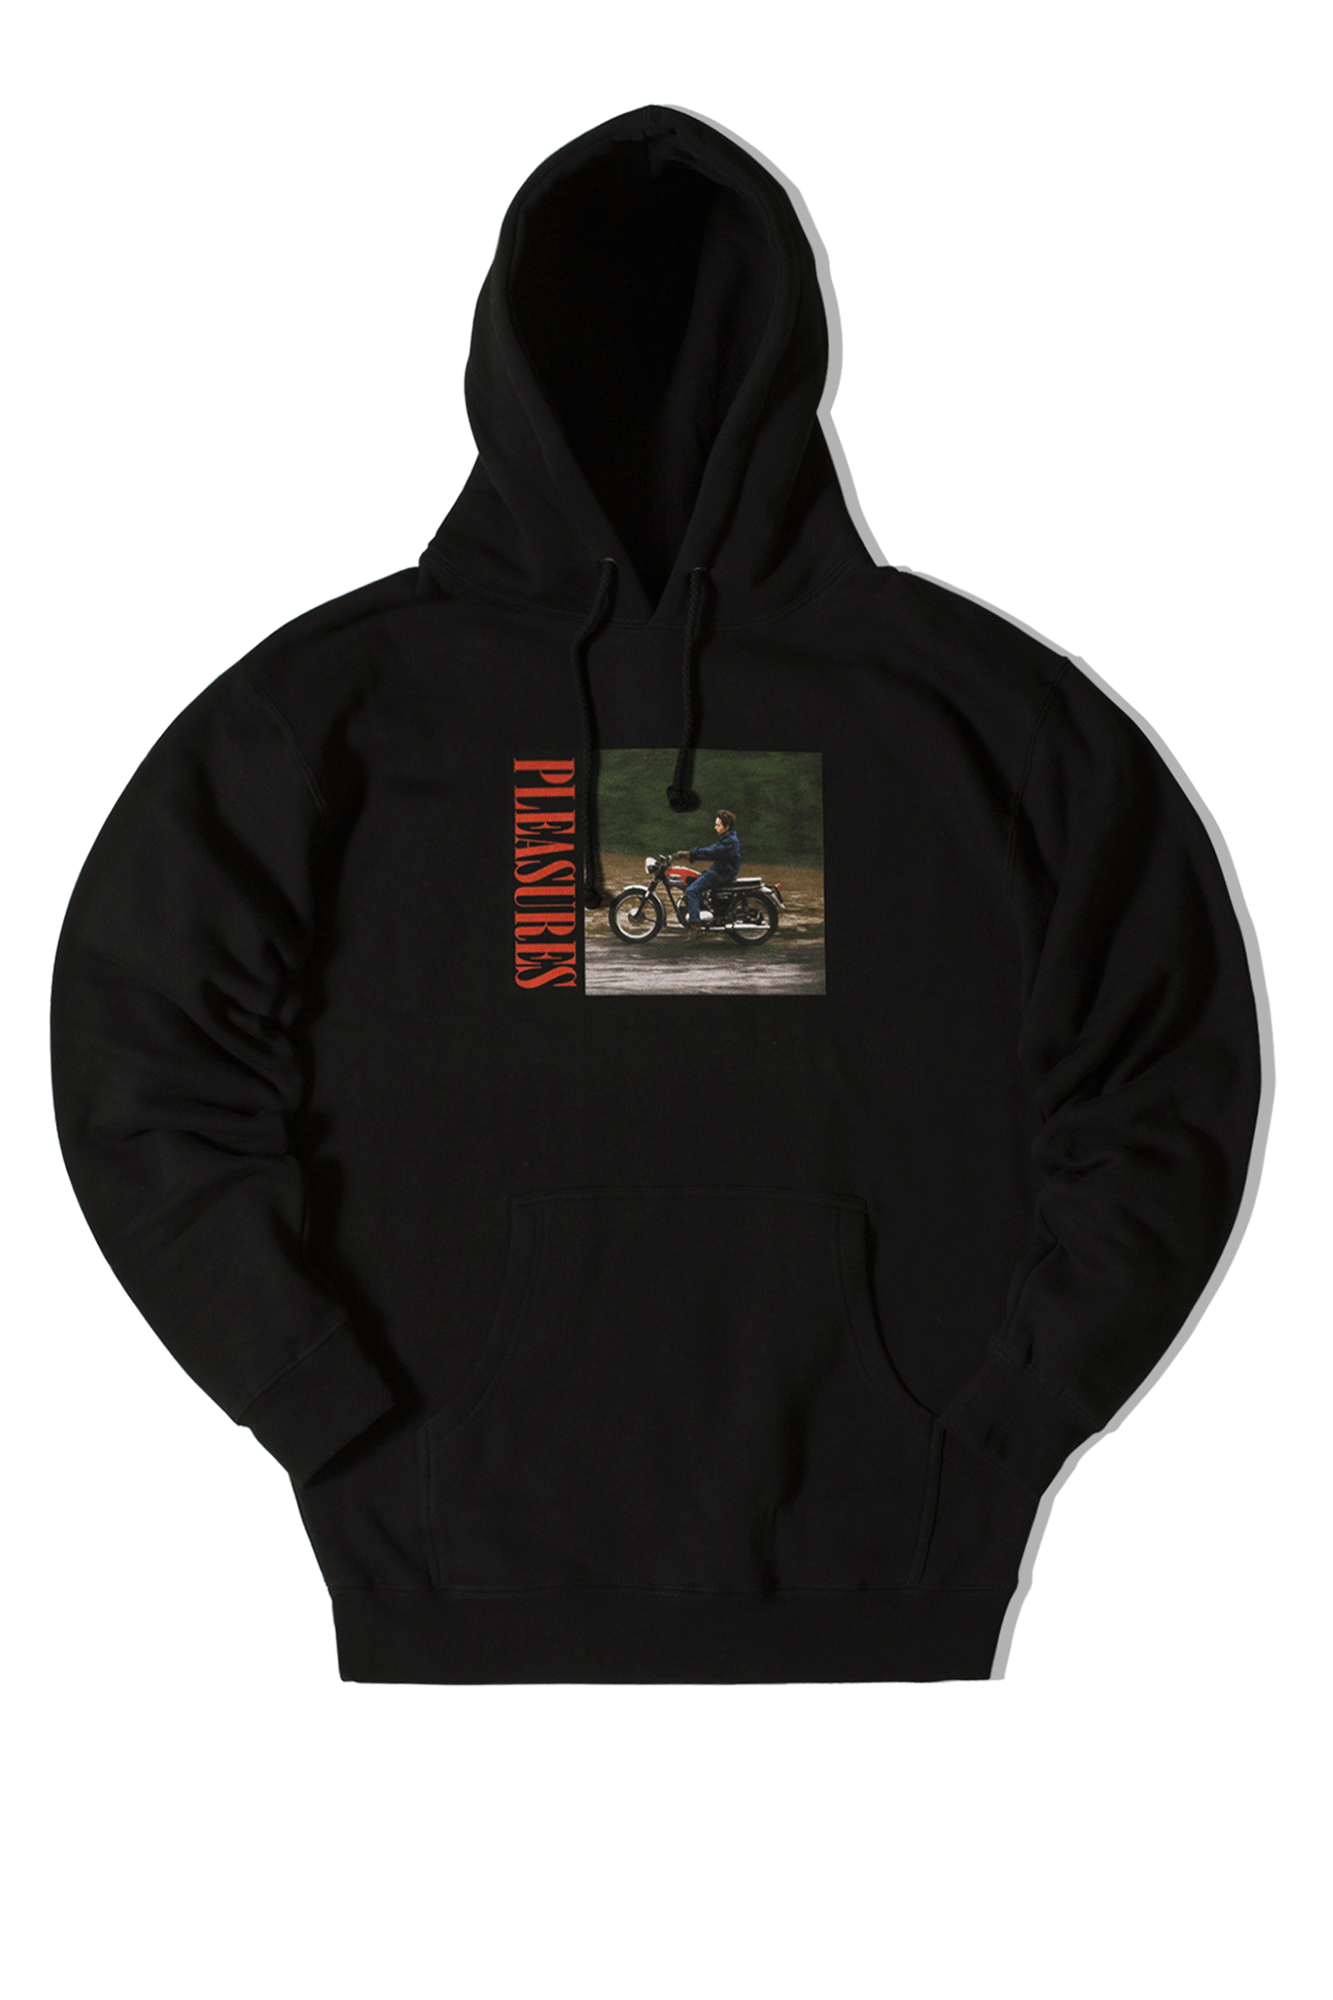 Bob Dylan Ride Hoody Black